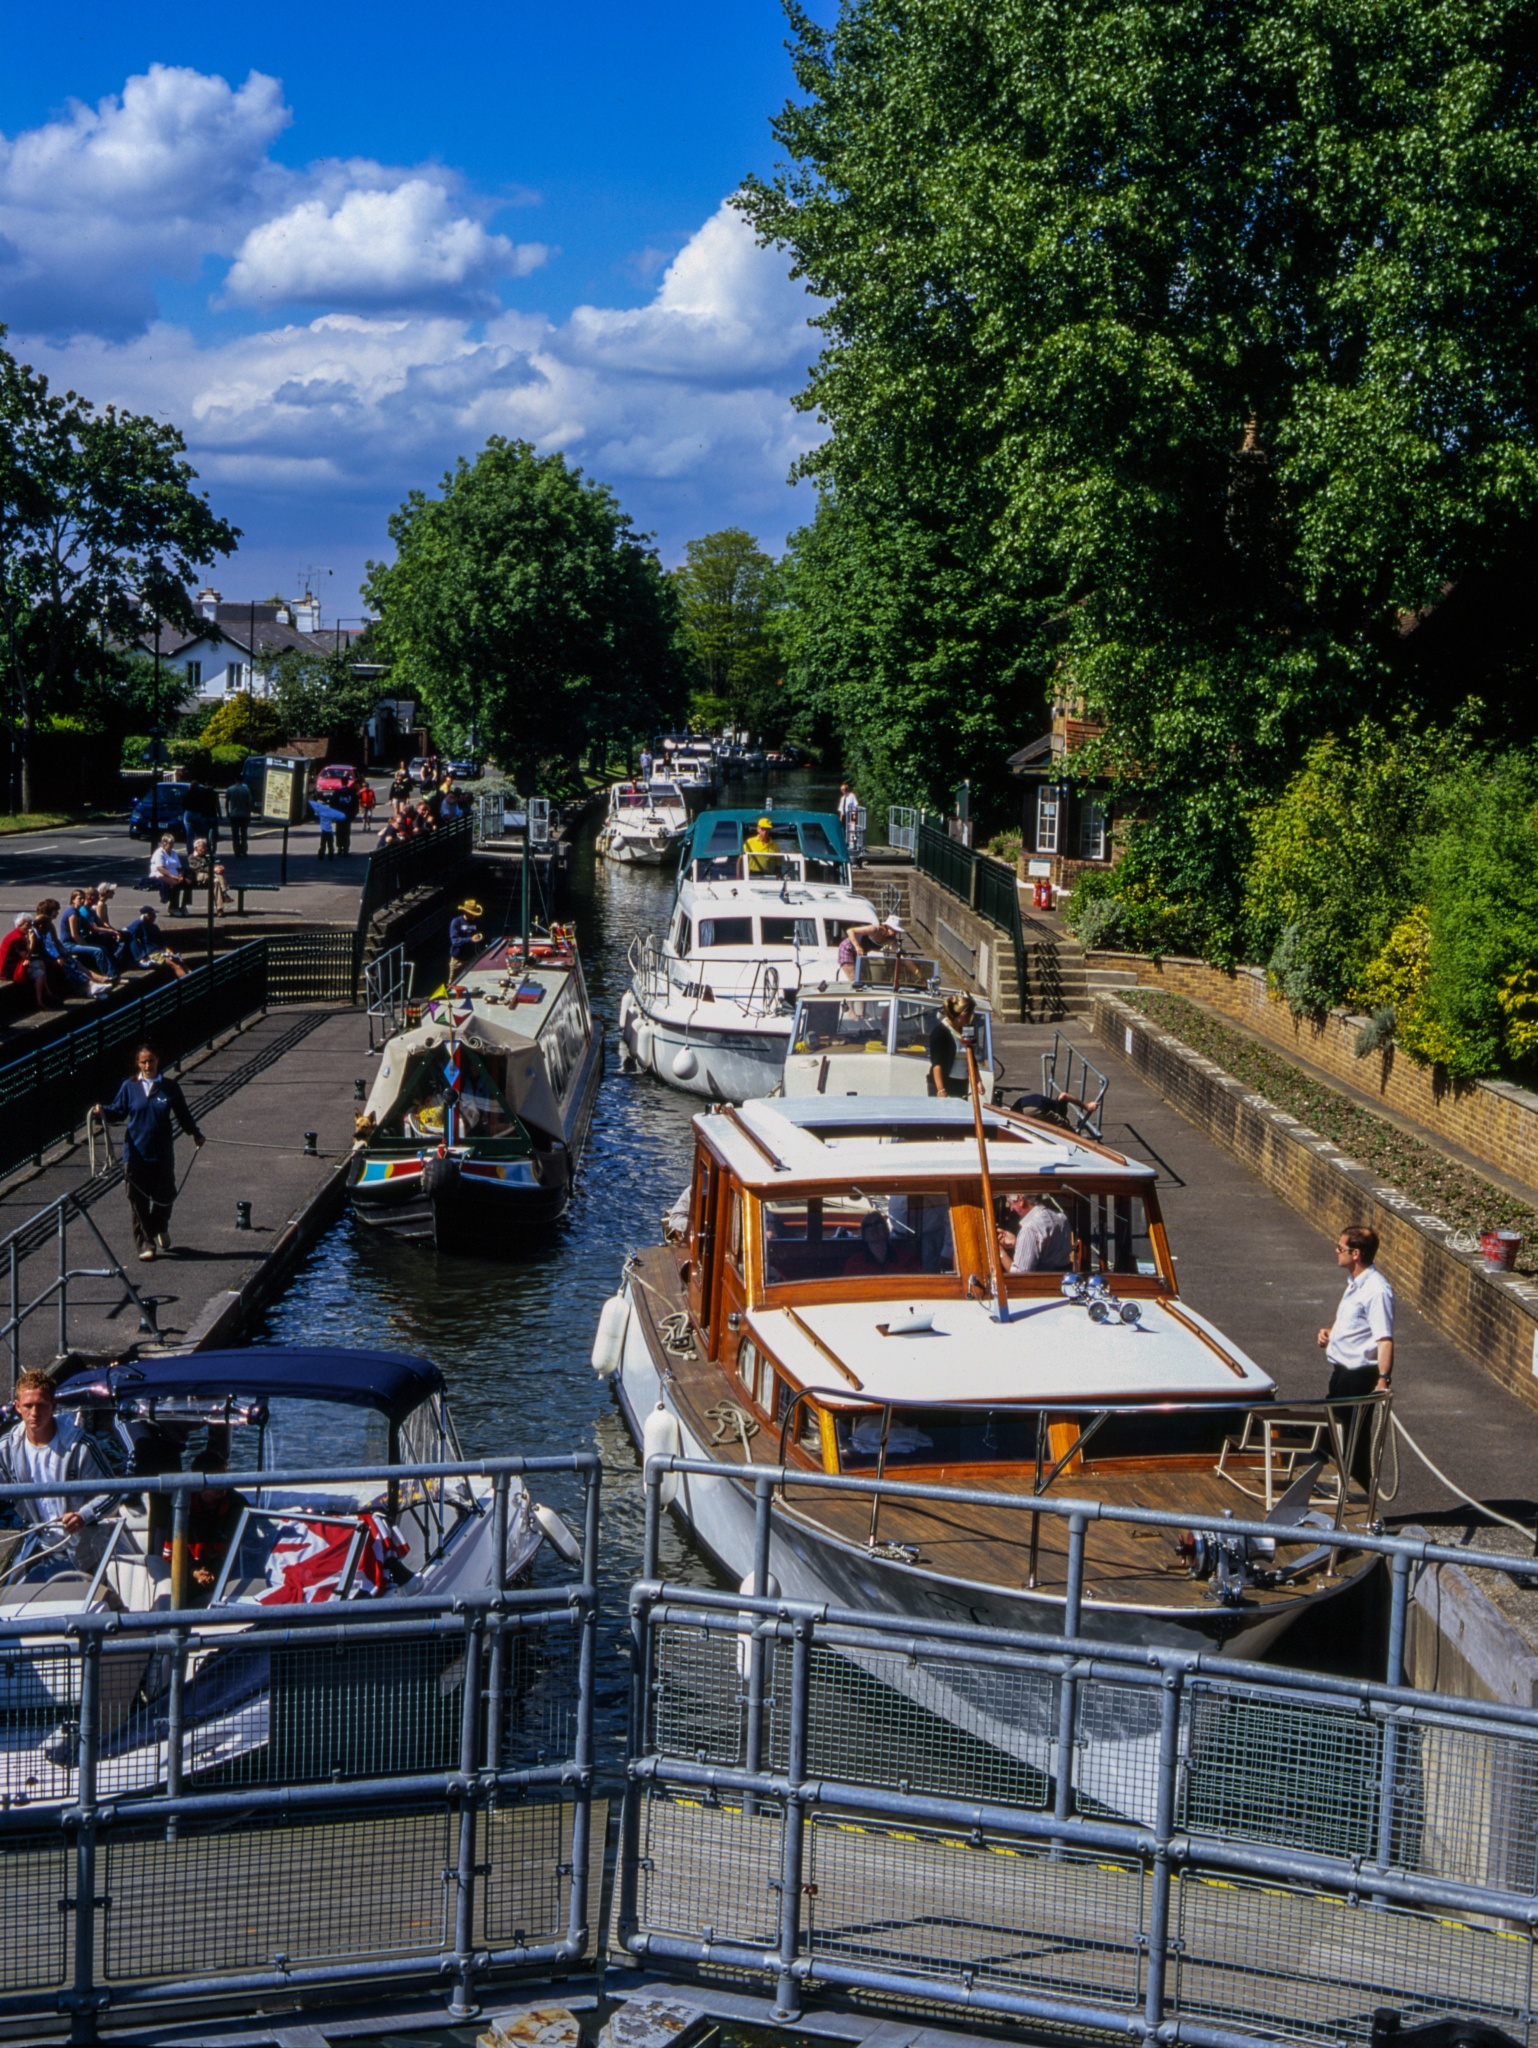 Boulters Lock by Jim Hellier